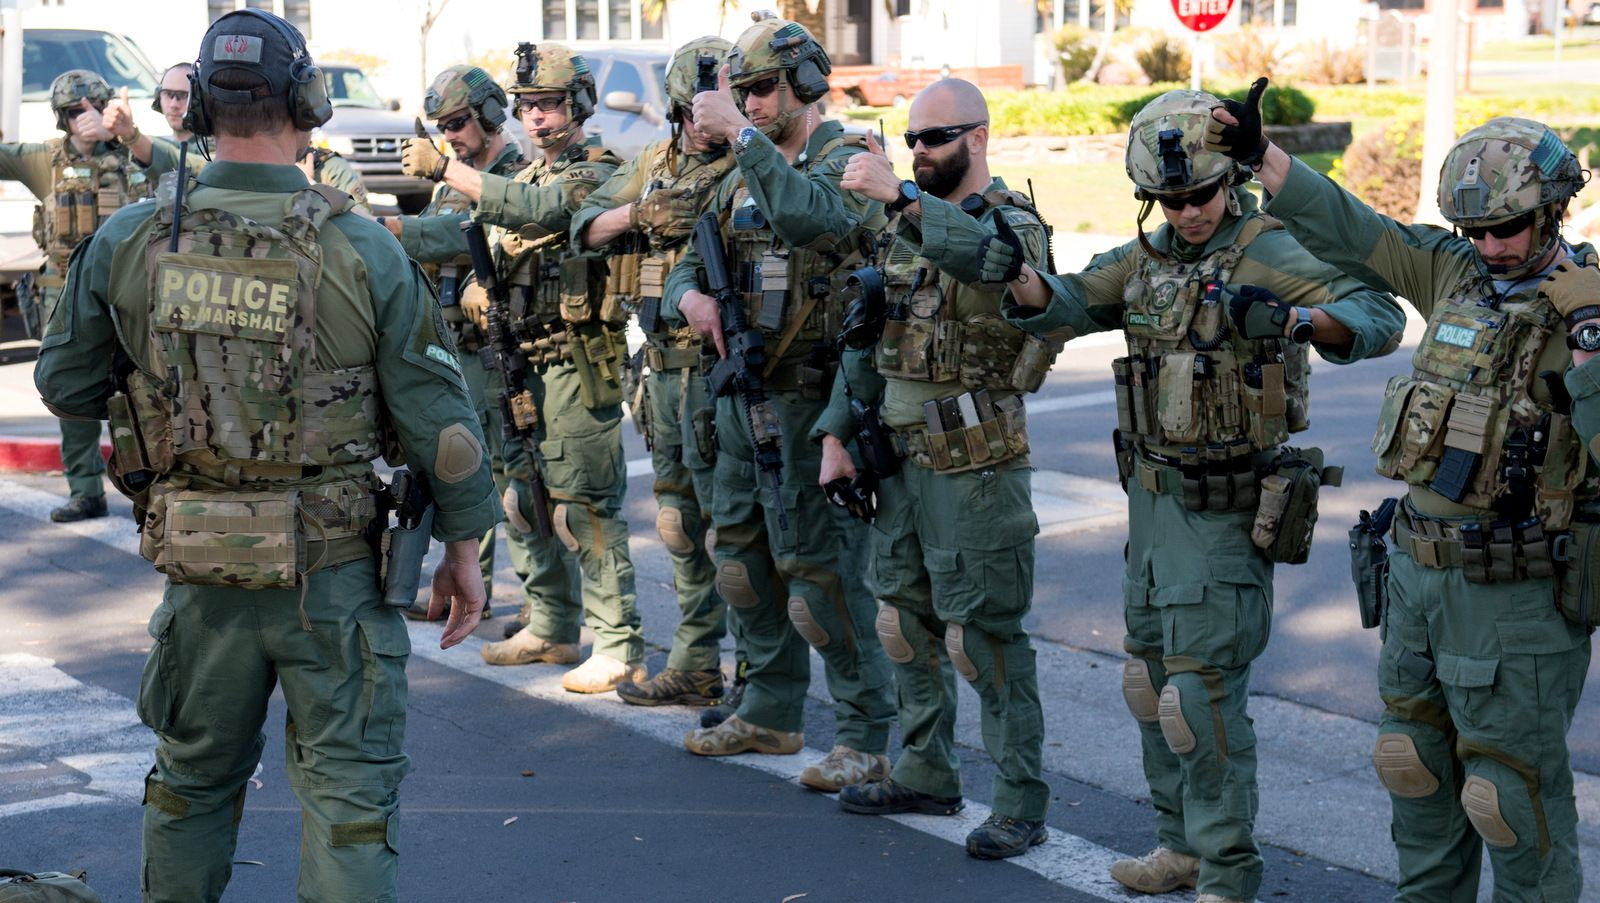 Fully Armed US Marshals Detain Man Over $1,500 Student Loan - US Marshals conduct training is ...